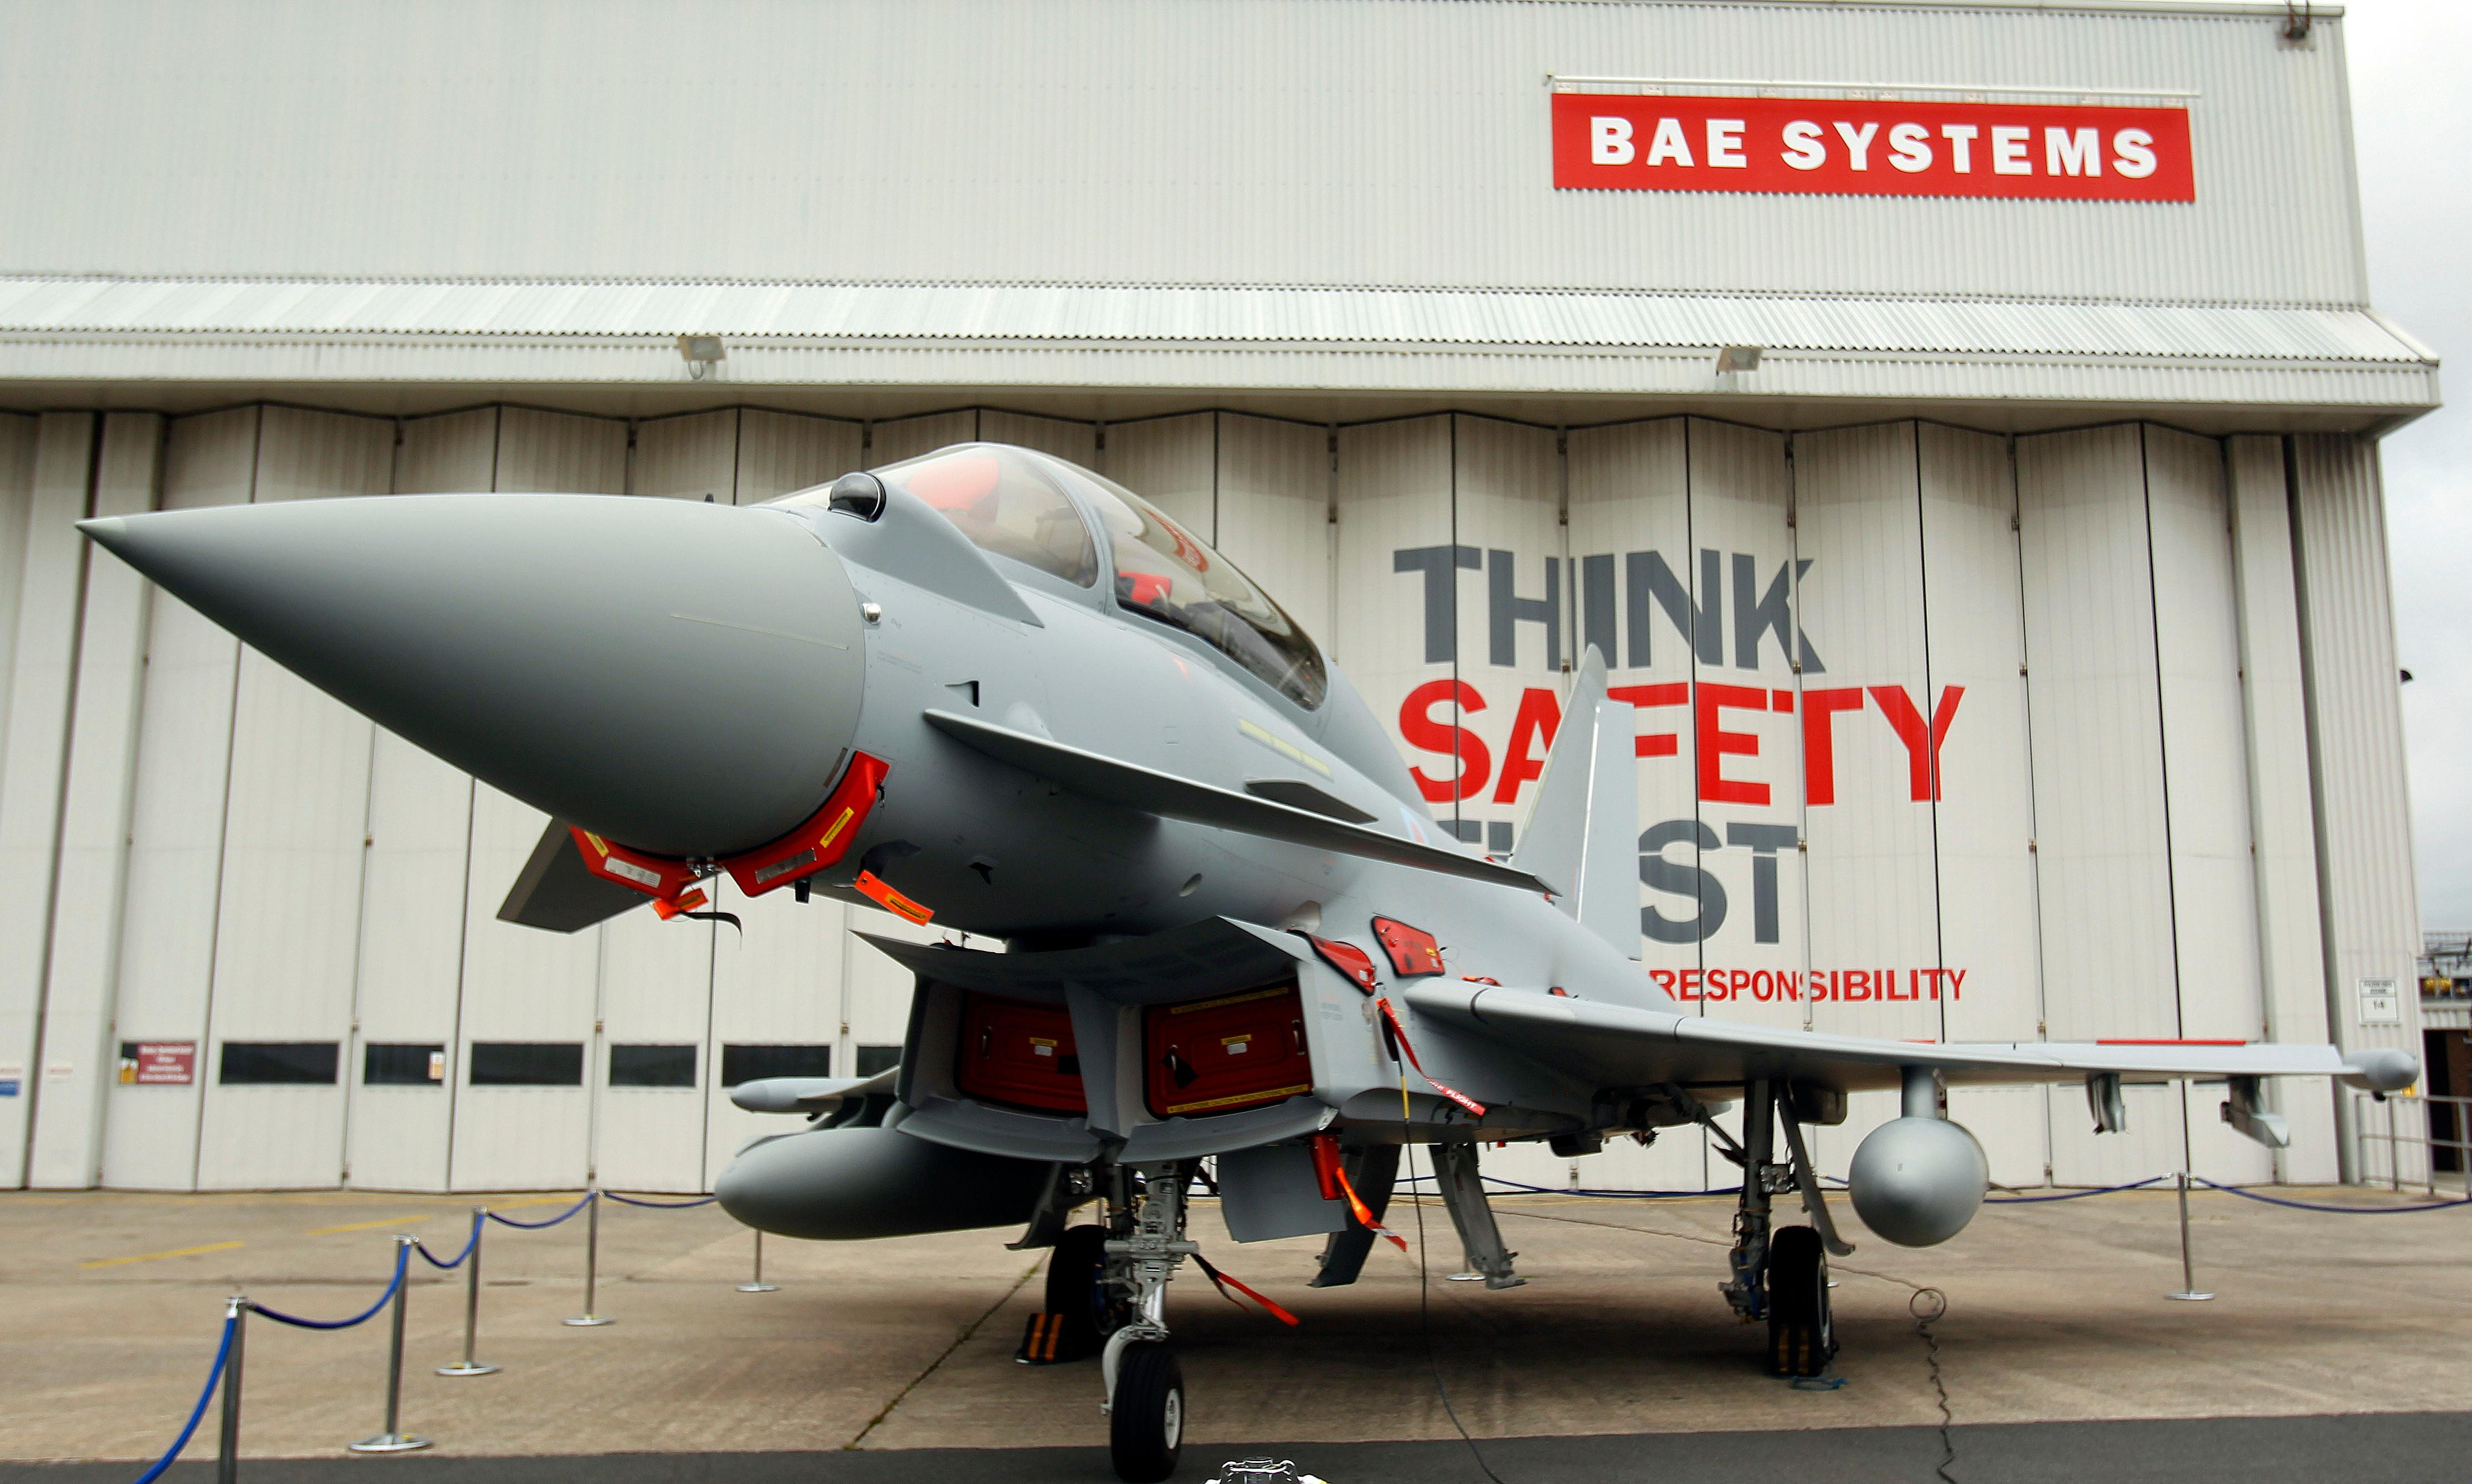 BAE Systems shares fall over Germany's ban on arms exports to Saudis